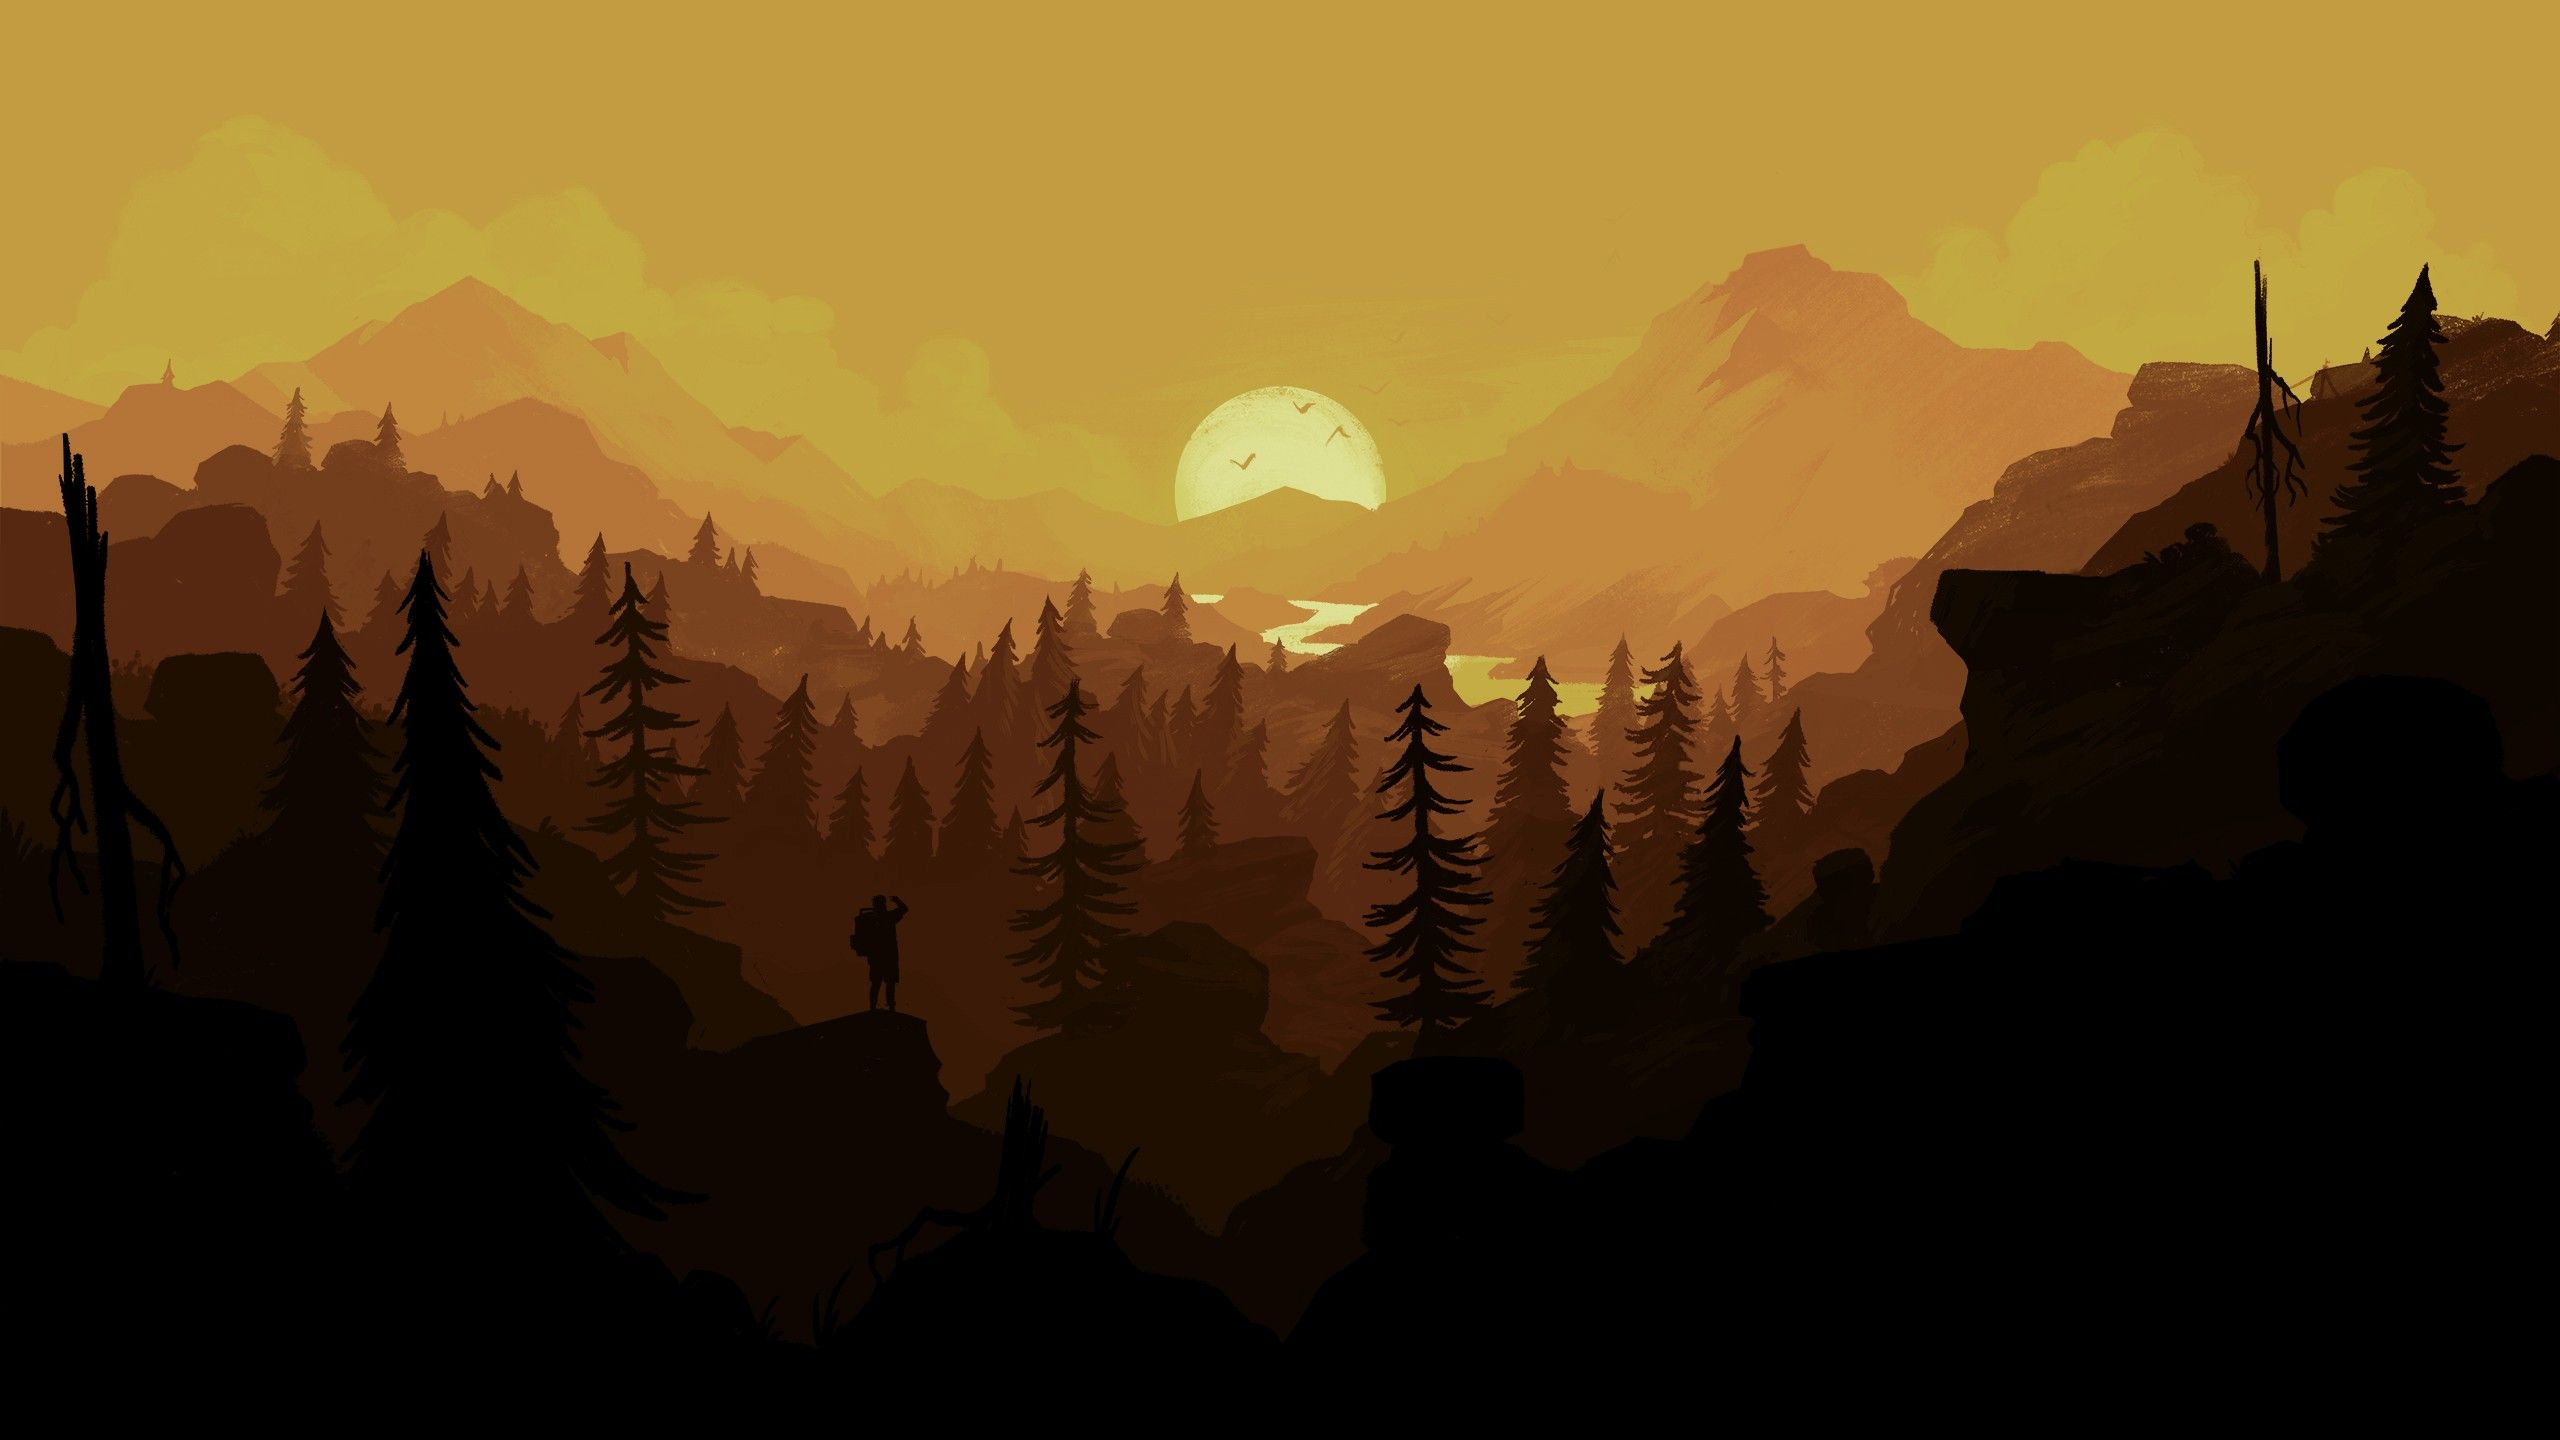 General 2560x1440 Firewatch hiking sunset forest